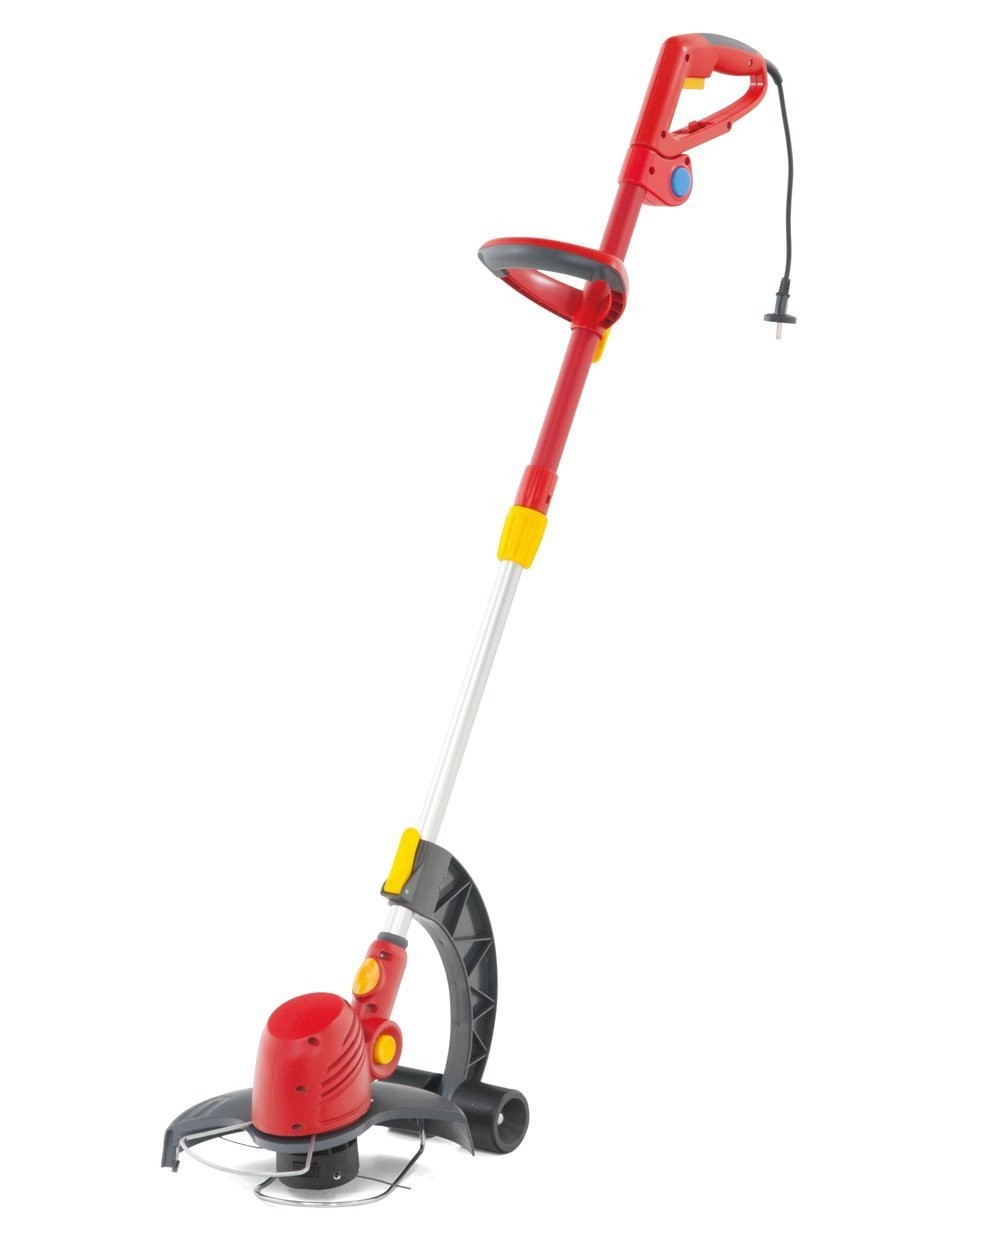 WOLF-Garten GTE850 Electric Grass-Trimmer